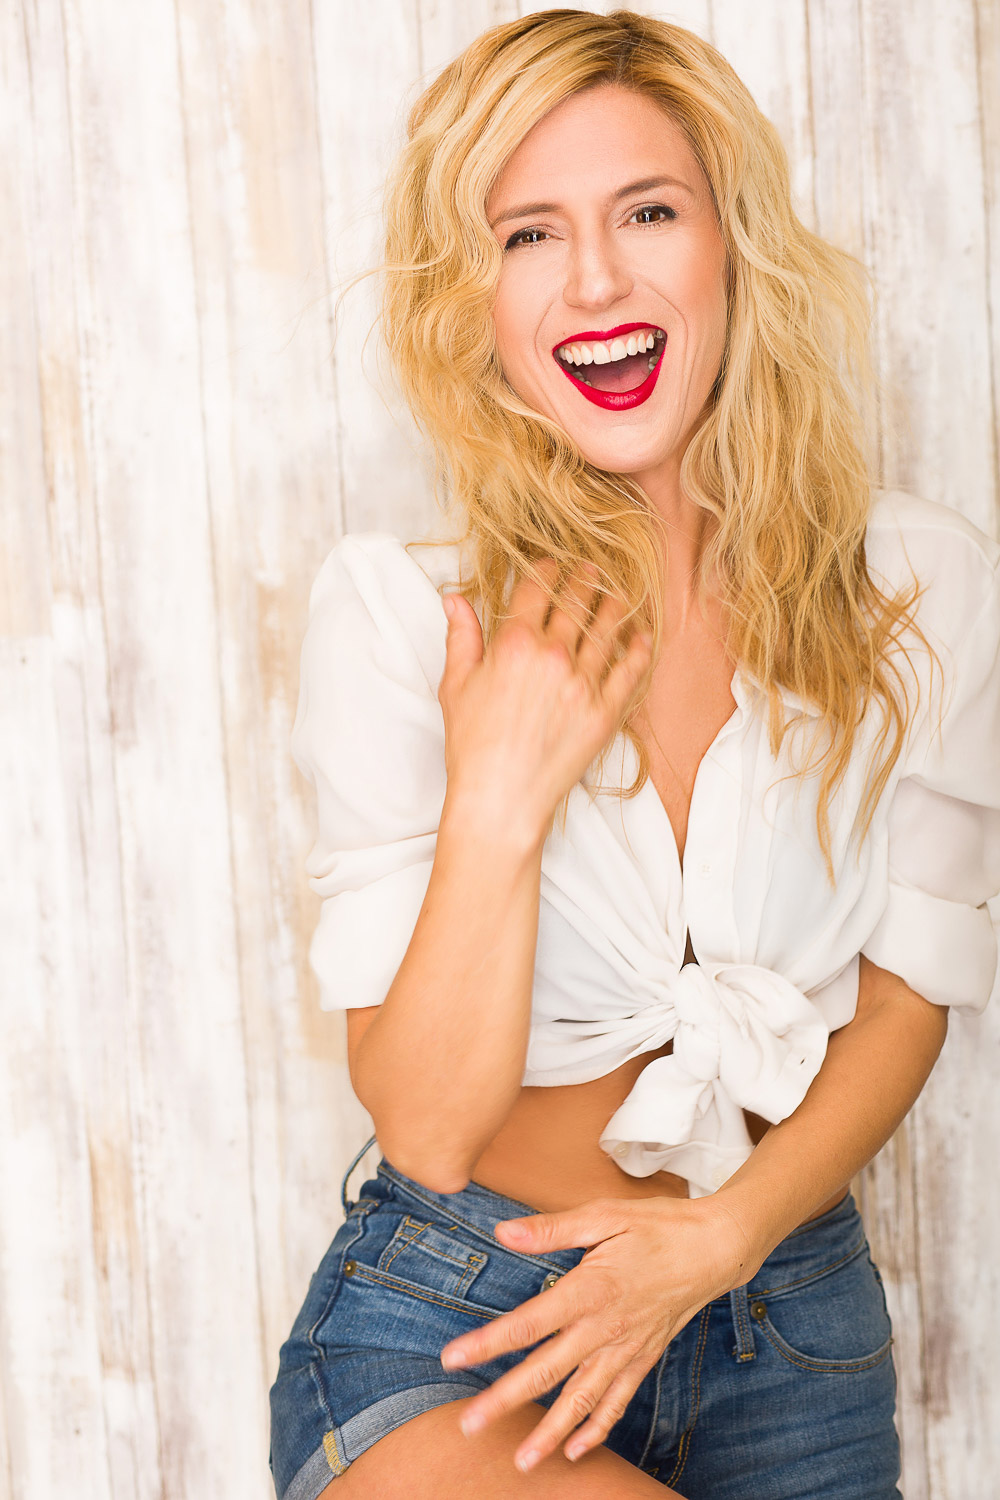 Harmony Blossom laughing and modeling in daisy dukes